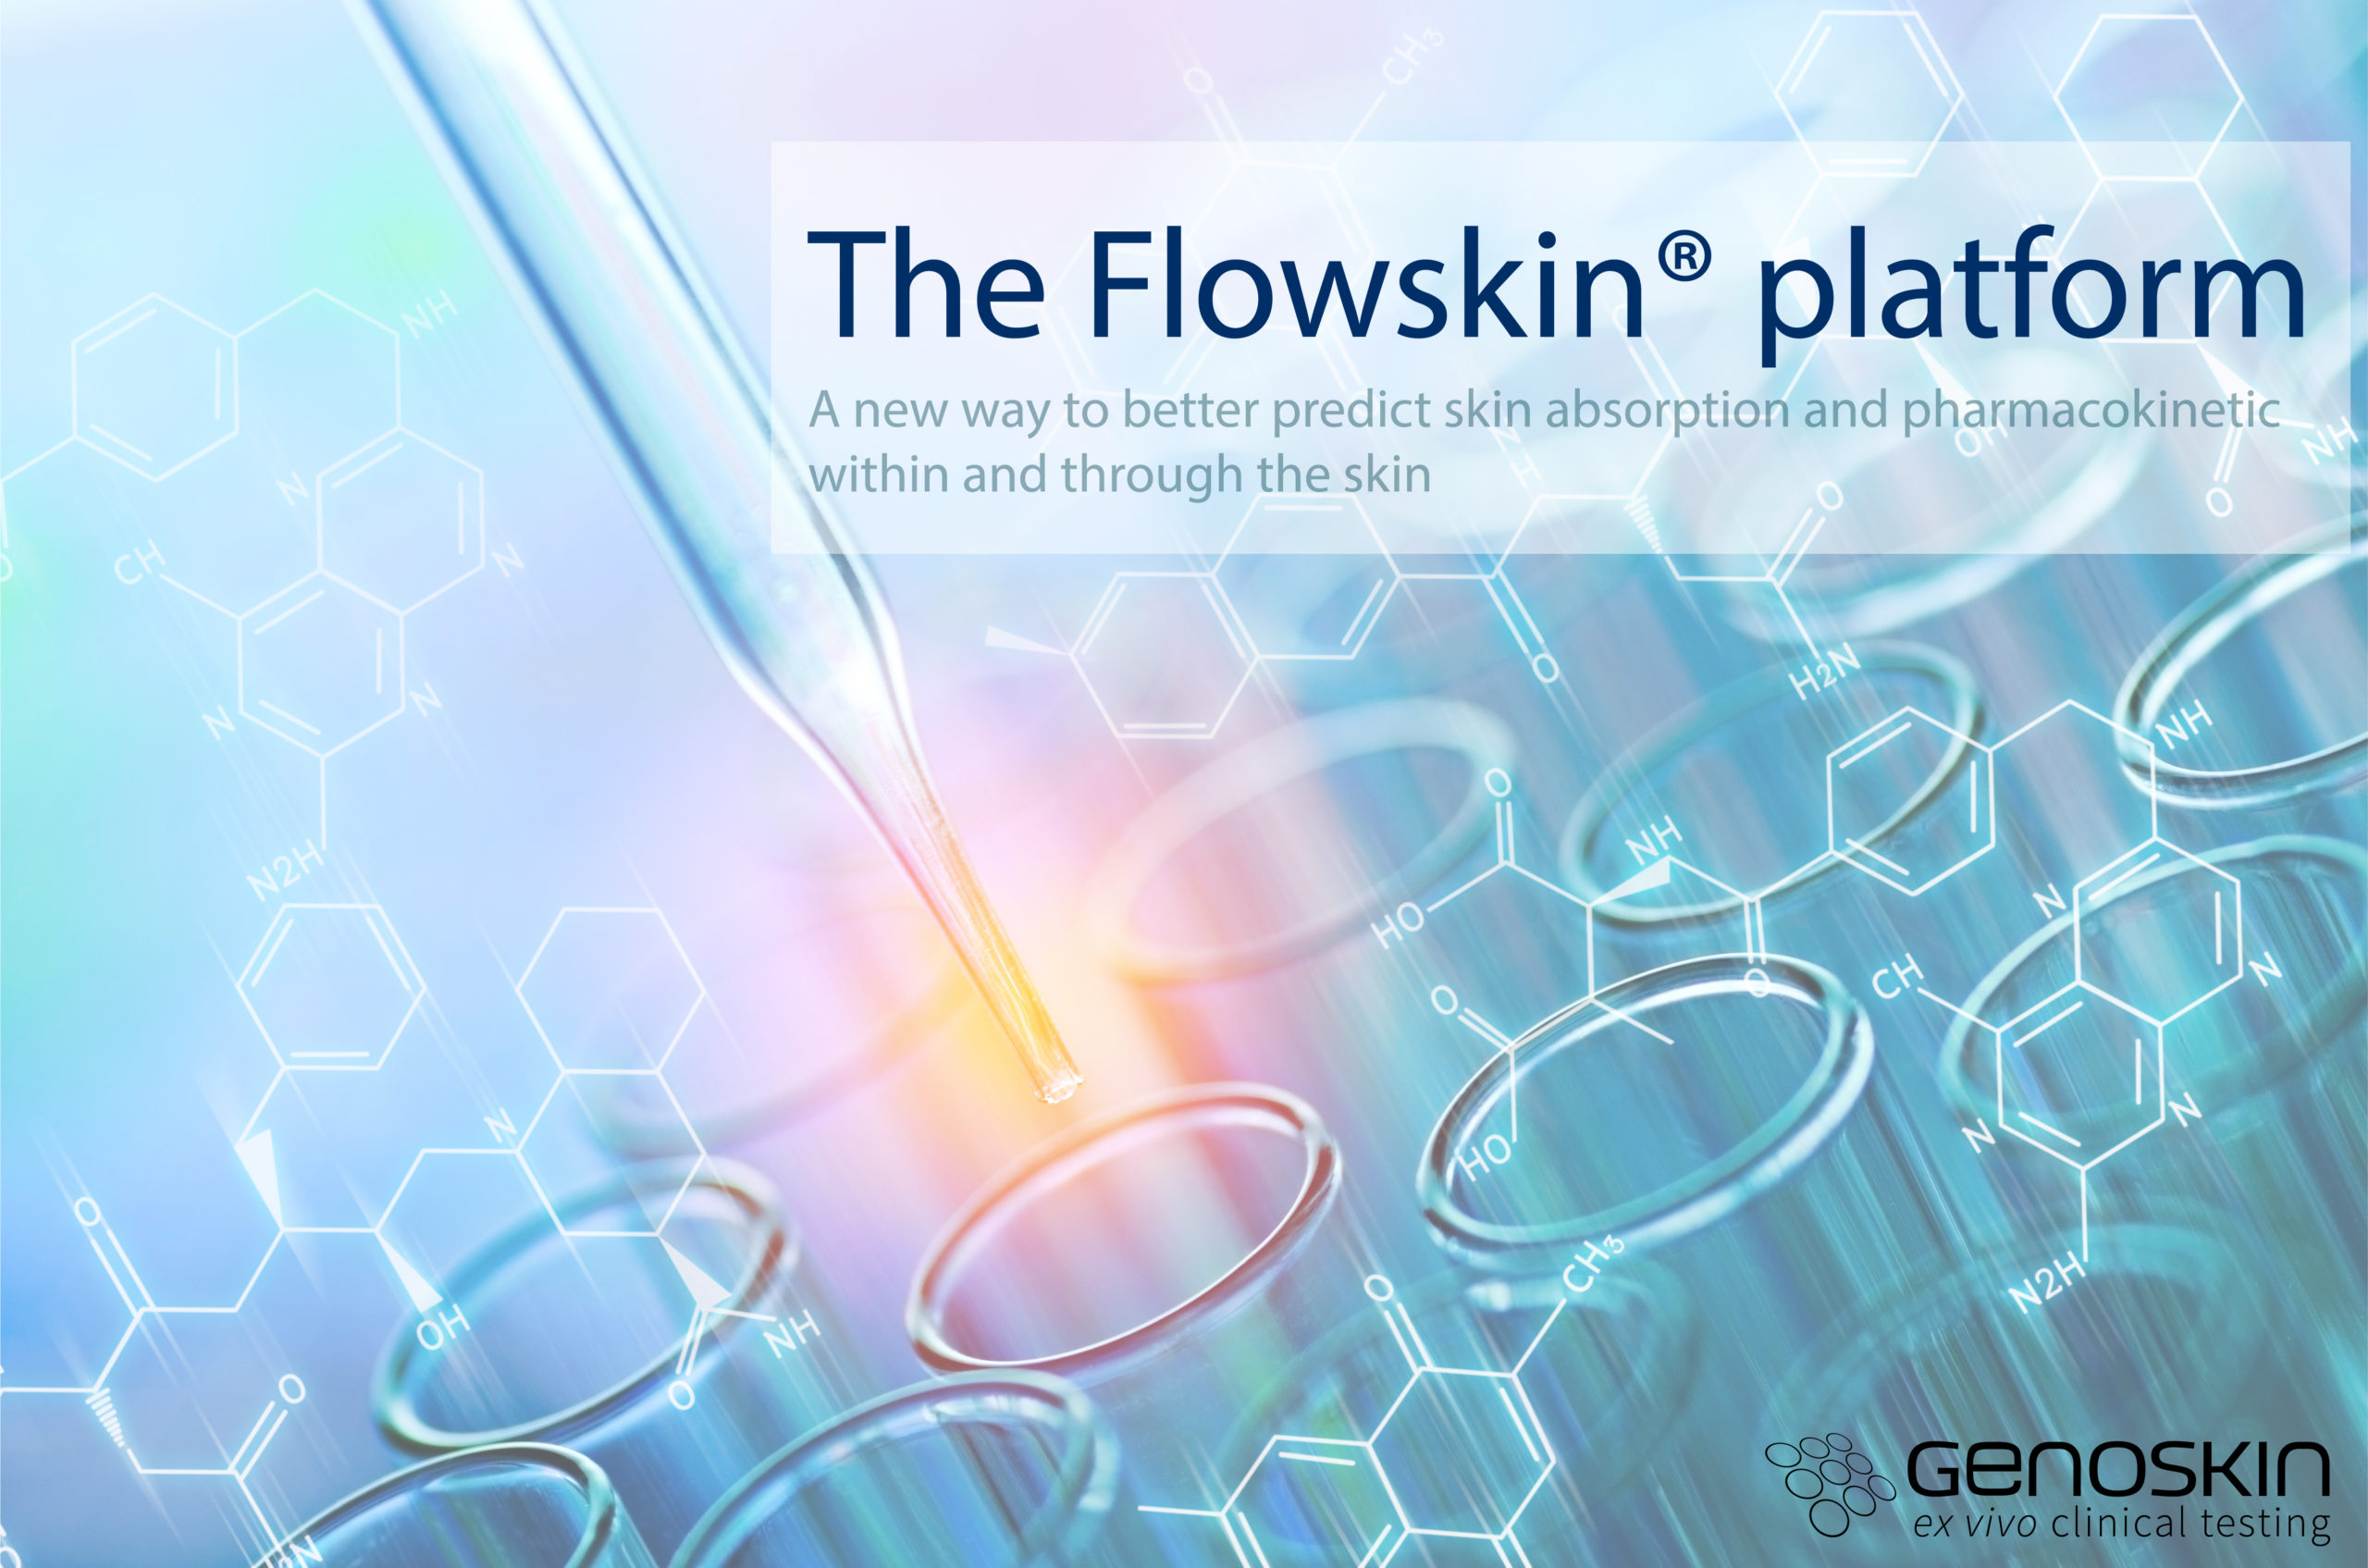 a perfused human skin platform to better predict skin absorption